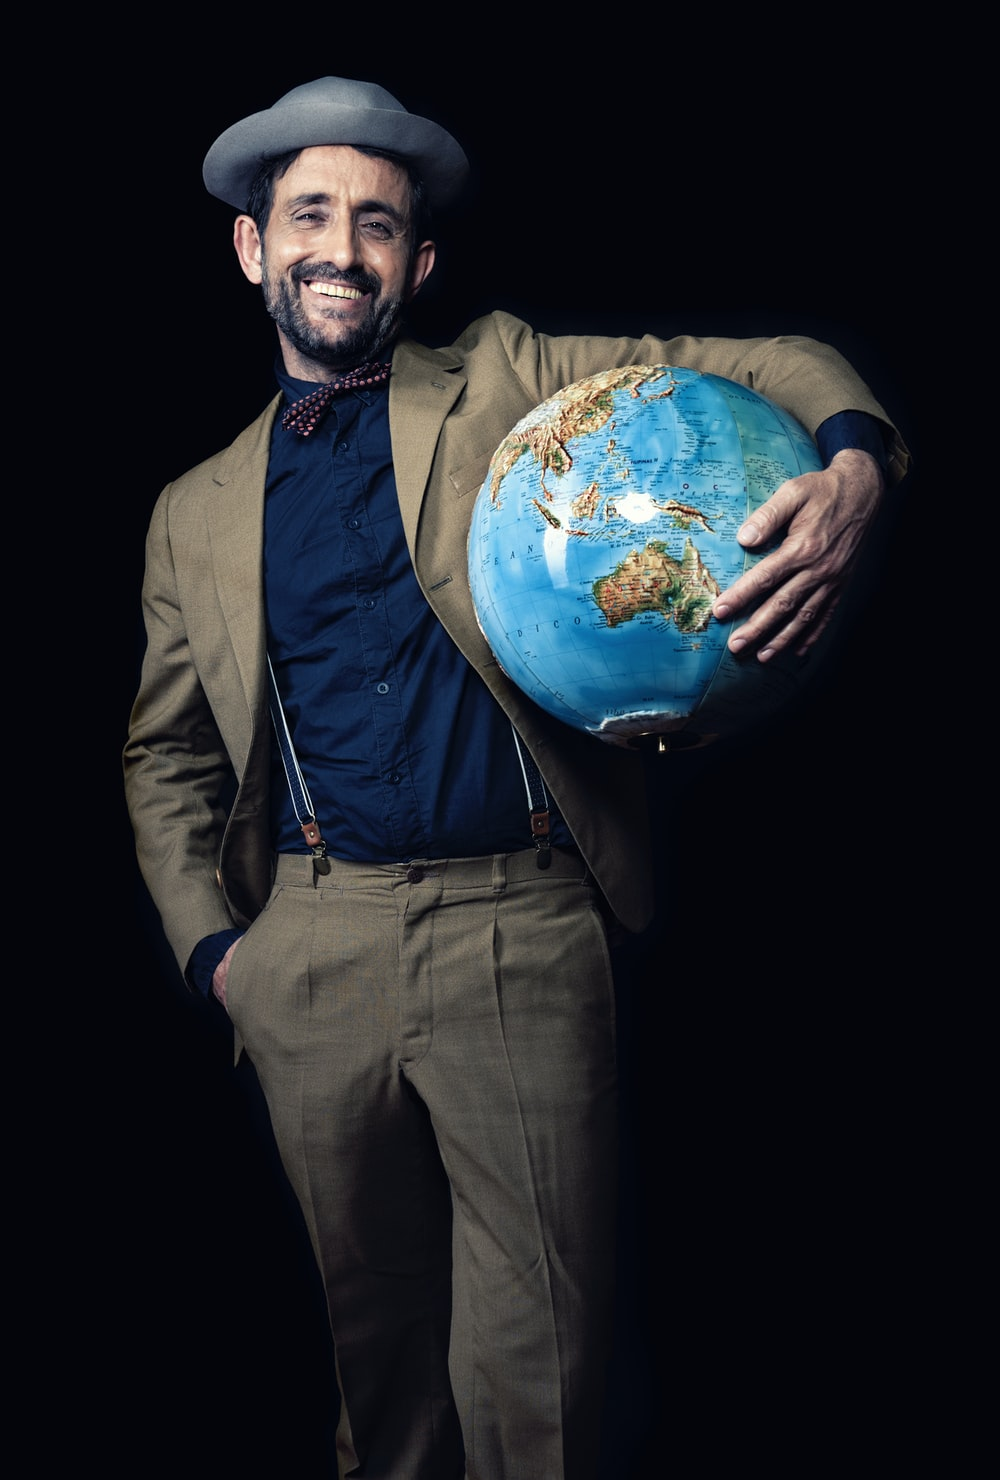 smiling man carrying blue globe